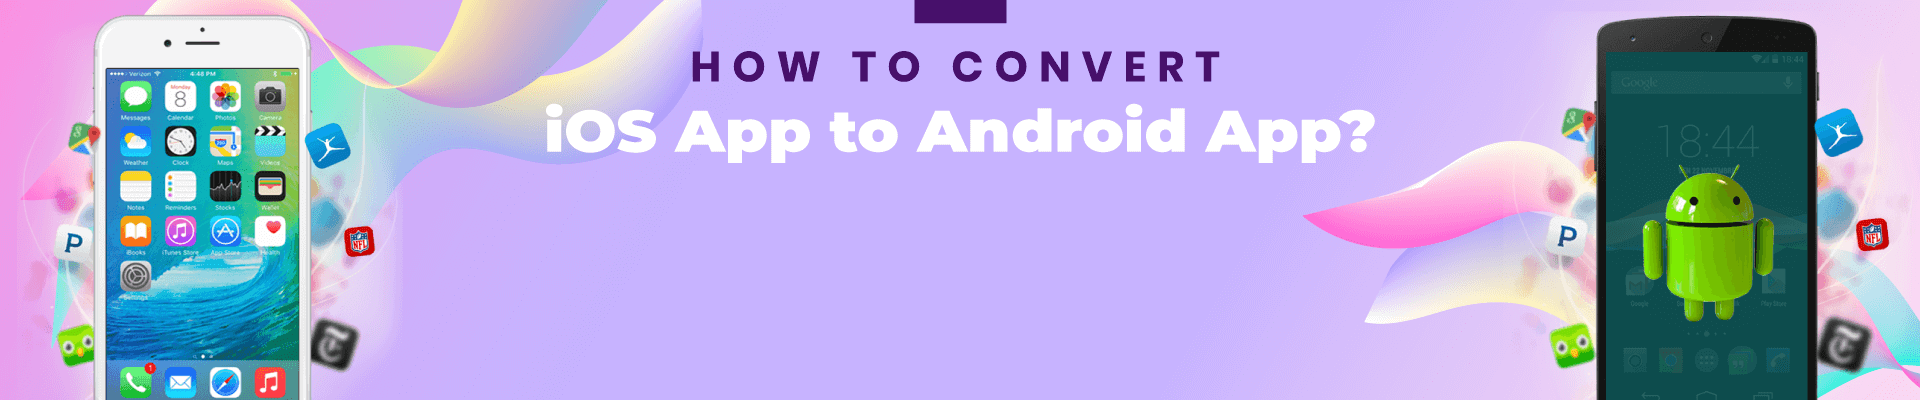 How to Convert iOS App to Android App